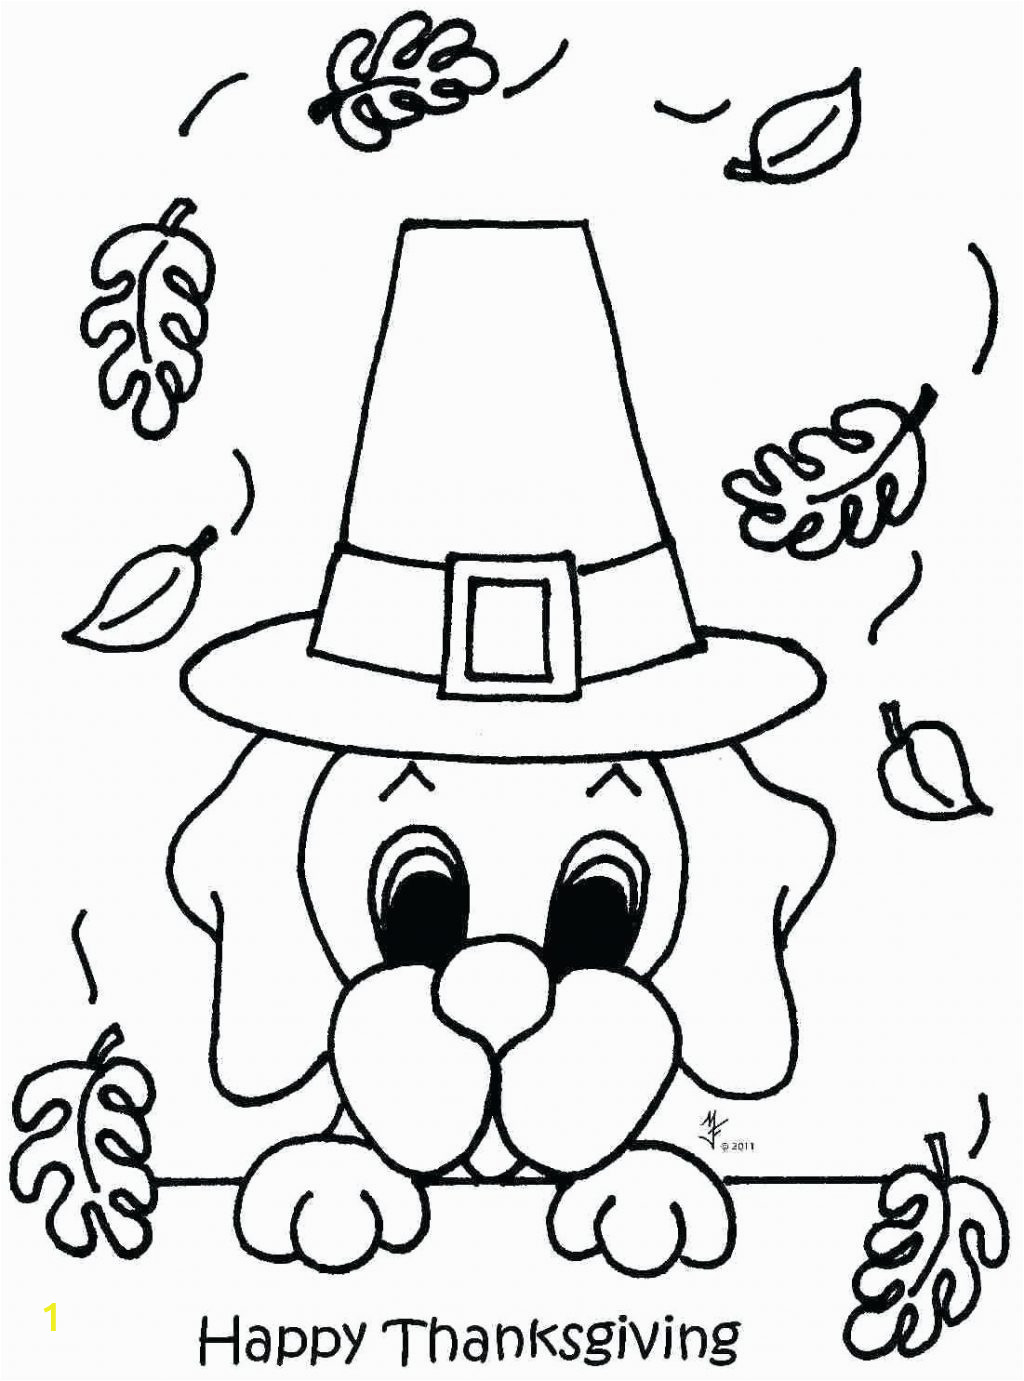 turkeyg pages printable free for kids thanksgiving cute turkey coloring page pilgrim hat cooked color by number body pictures activity template funny to print